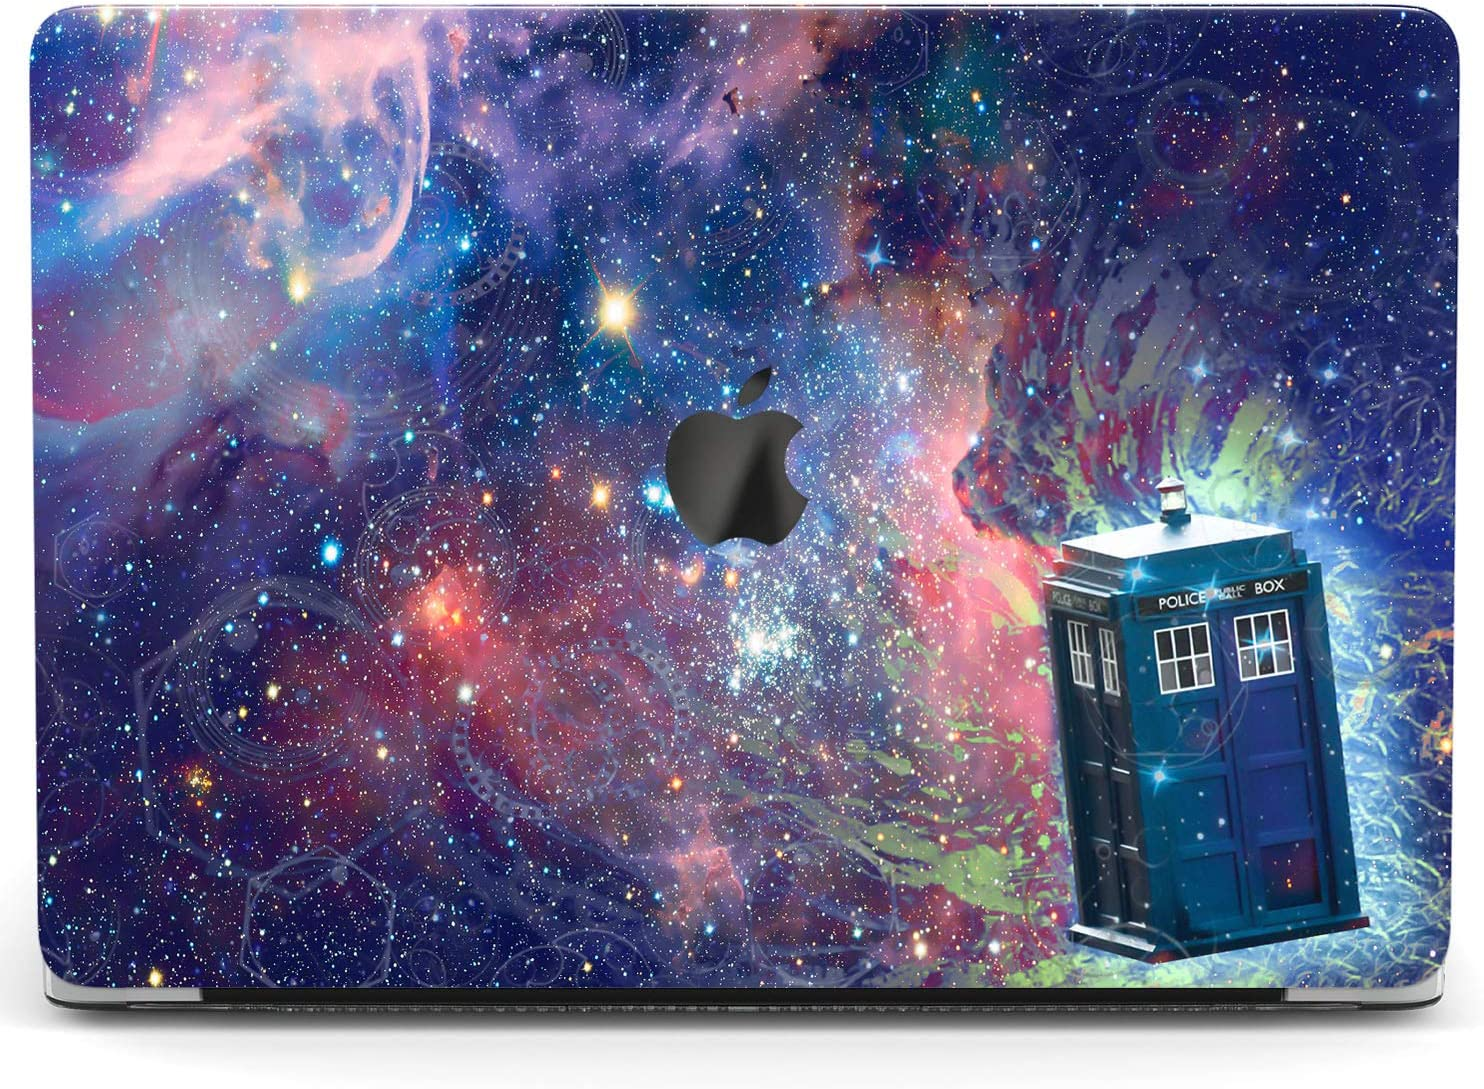 Wonder Wild Case For MacBook Air 13 inch Pro 15 2019 2018 Retina 12 11 Apple Hard Mac Protective Cover Touch Bar 2017 2016 2020 Plastic Laptop Print Space Police Call Box Galaxy TV Show Movie Abstract